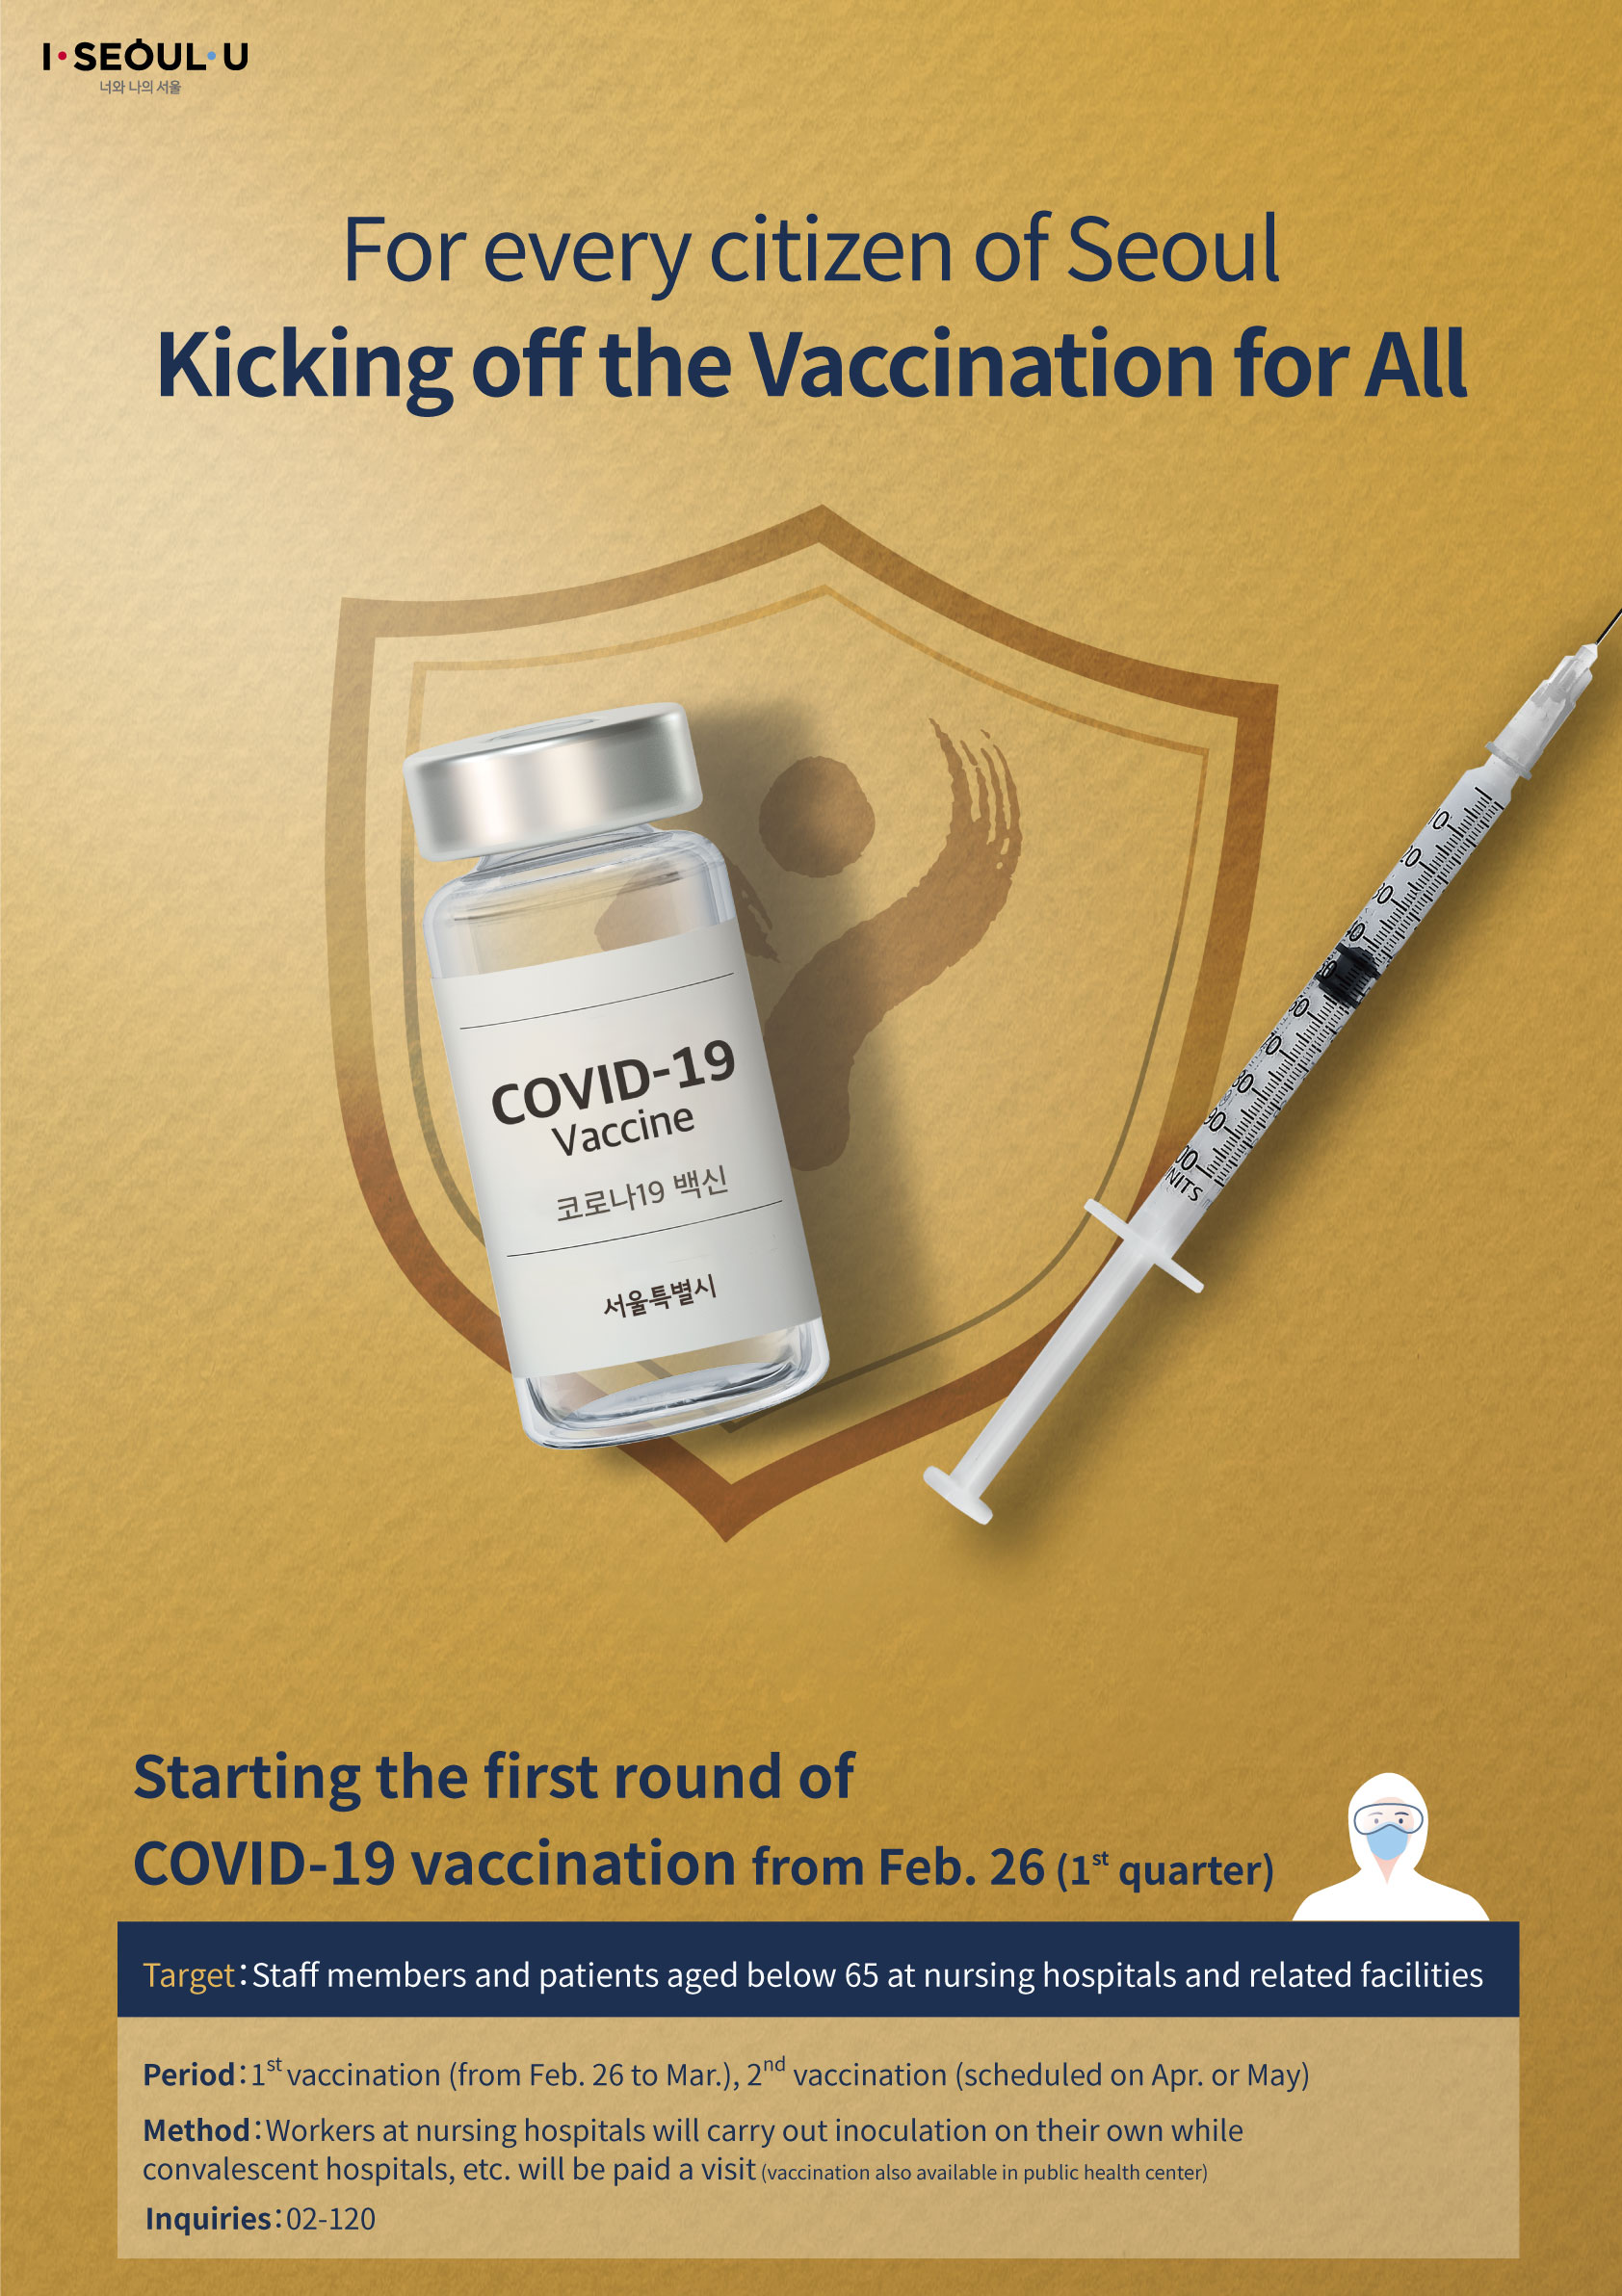 For every citizen of Seoul Kicking off the Vaccination for All Starting the first round of COVID-19 vaccination from Feb. 26 (1st quarter) Target: Staff members and patients aged below 65 at nursing hospitals and related facilities Period: 1st vaccination (from Feb. 26 to Mar.); 2nd vaccination (scheduled on Apr. or May) Method: Workers at nursing hospitals will carry out inoculation on their own while convalescent hospitals, etc. will be paid a visit (vaccination also available in public health center) Inquiries: 02-120